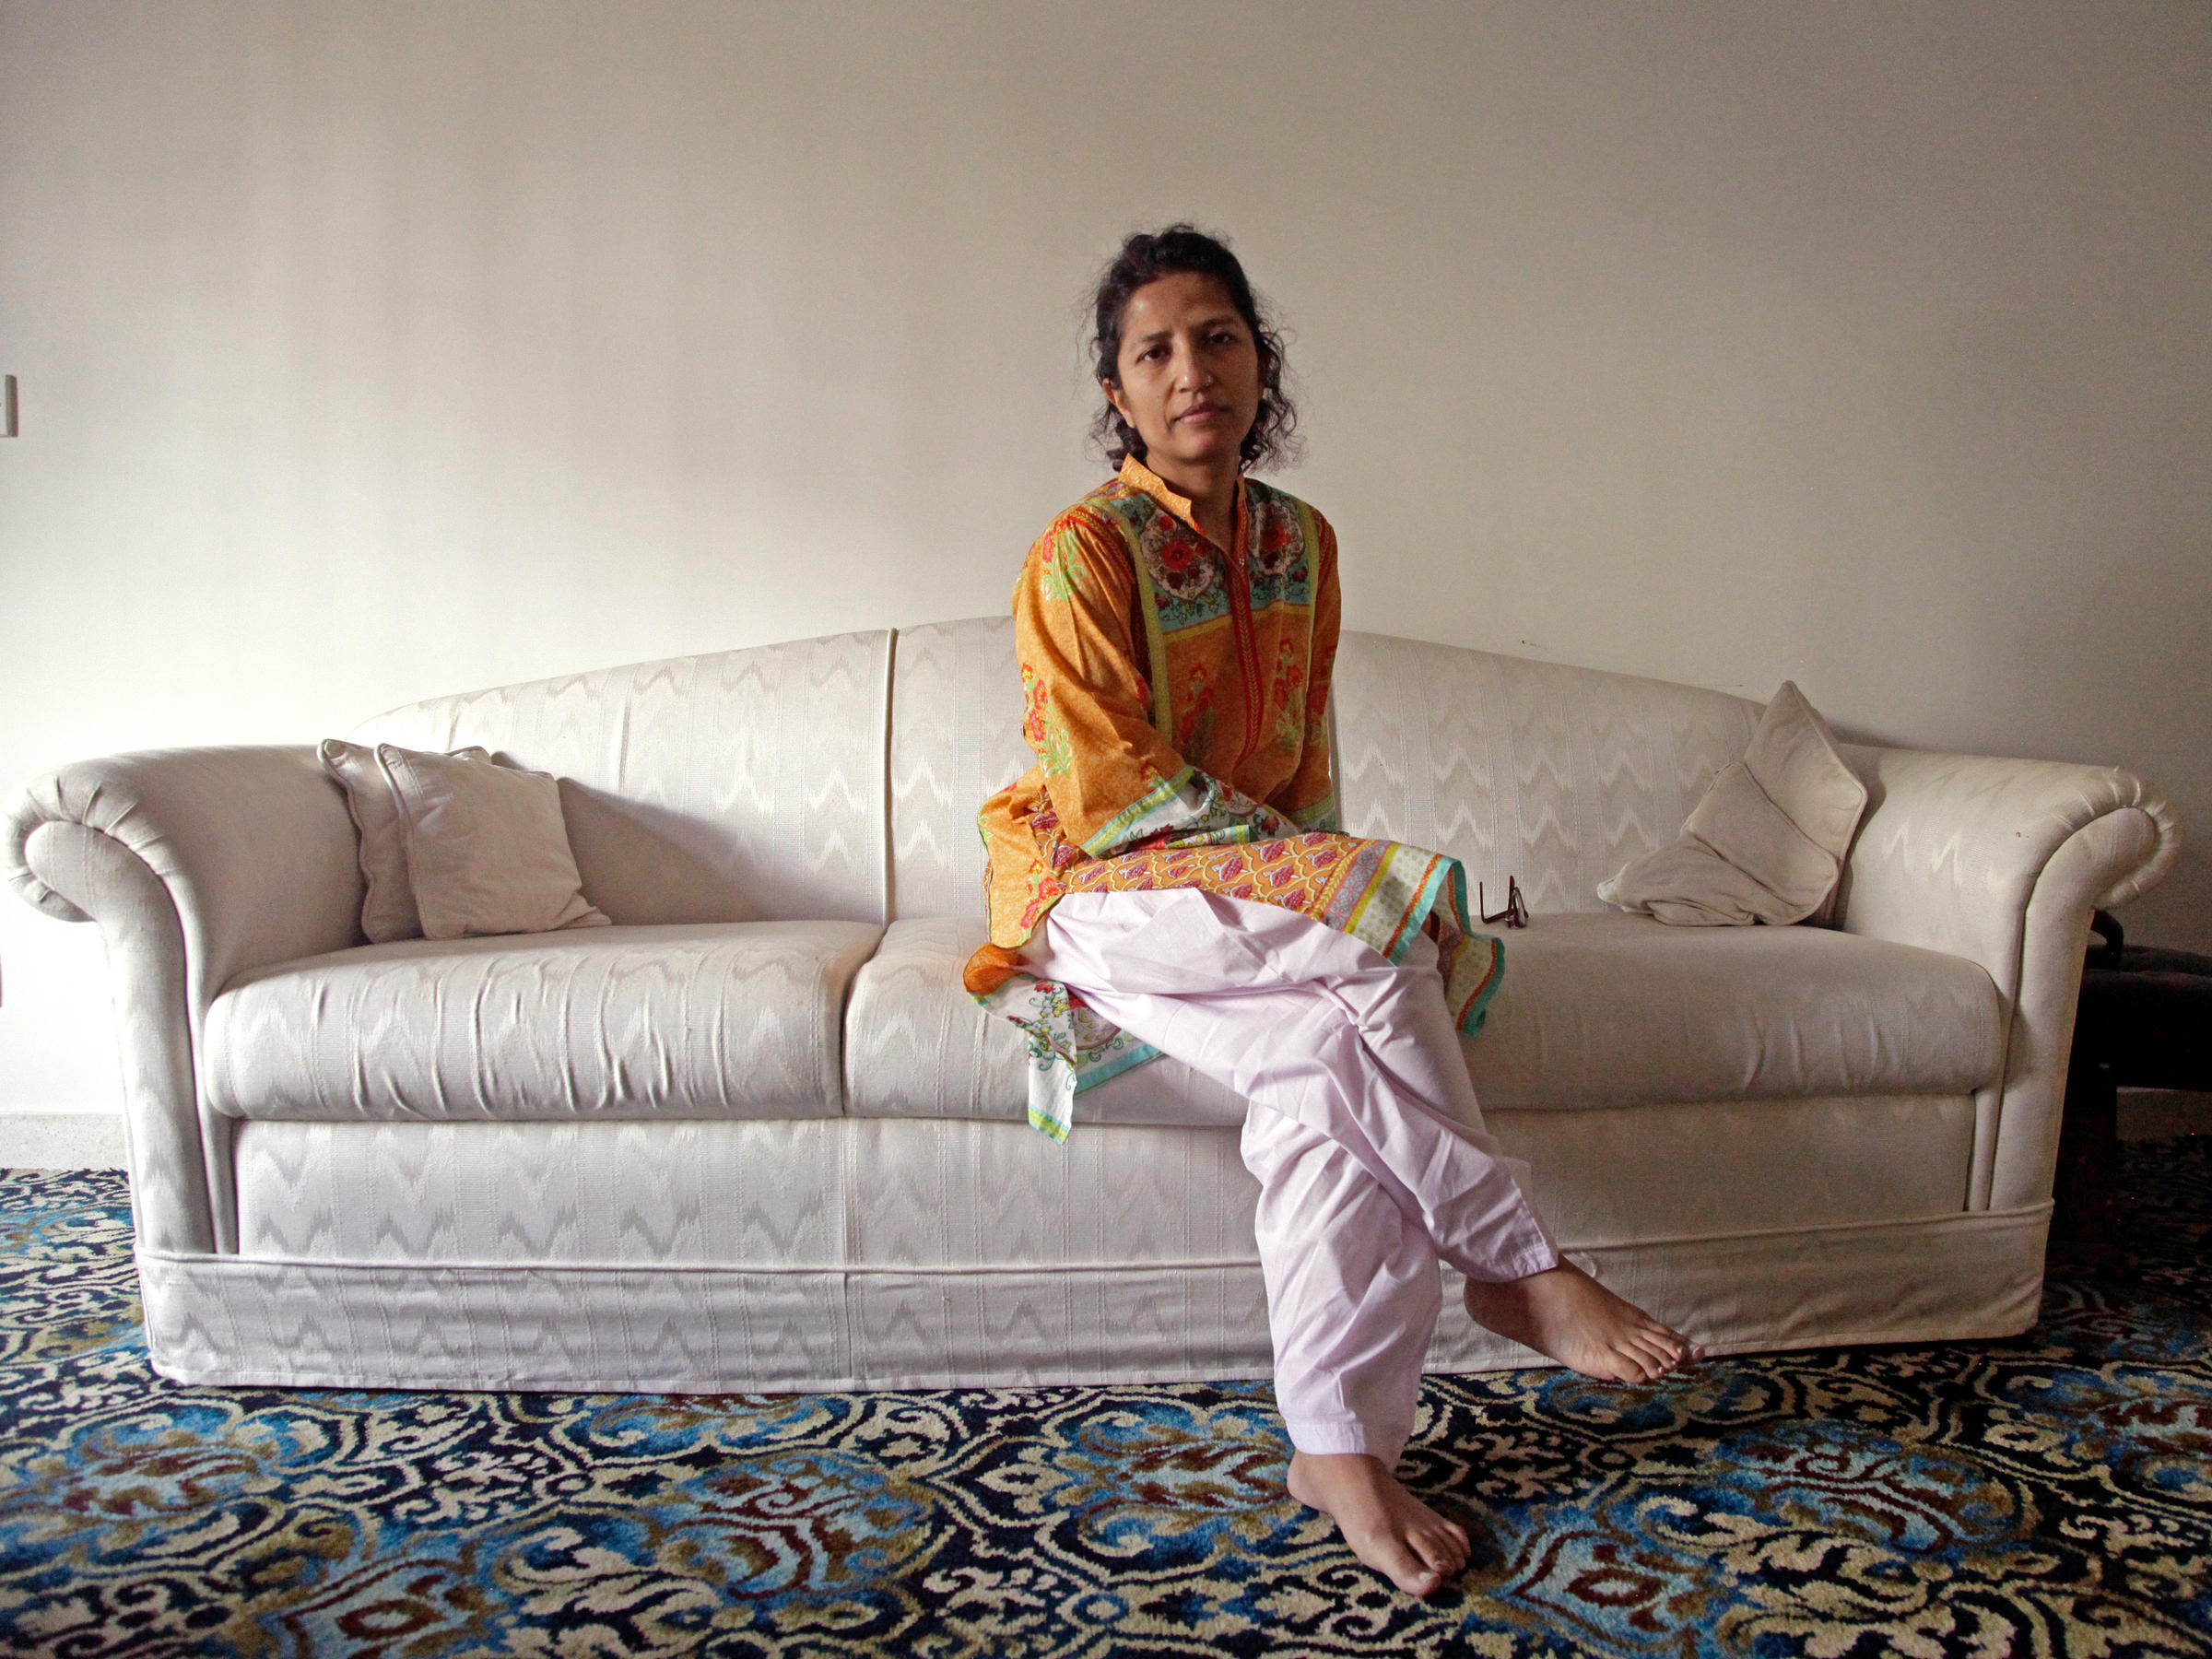 f45e45186bc01 Leena Khandwalla, 44, at her family home in Karachi, Pakistan. After members  of her religious community in the U.S. and Australia were arrested for ...